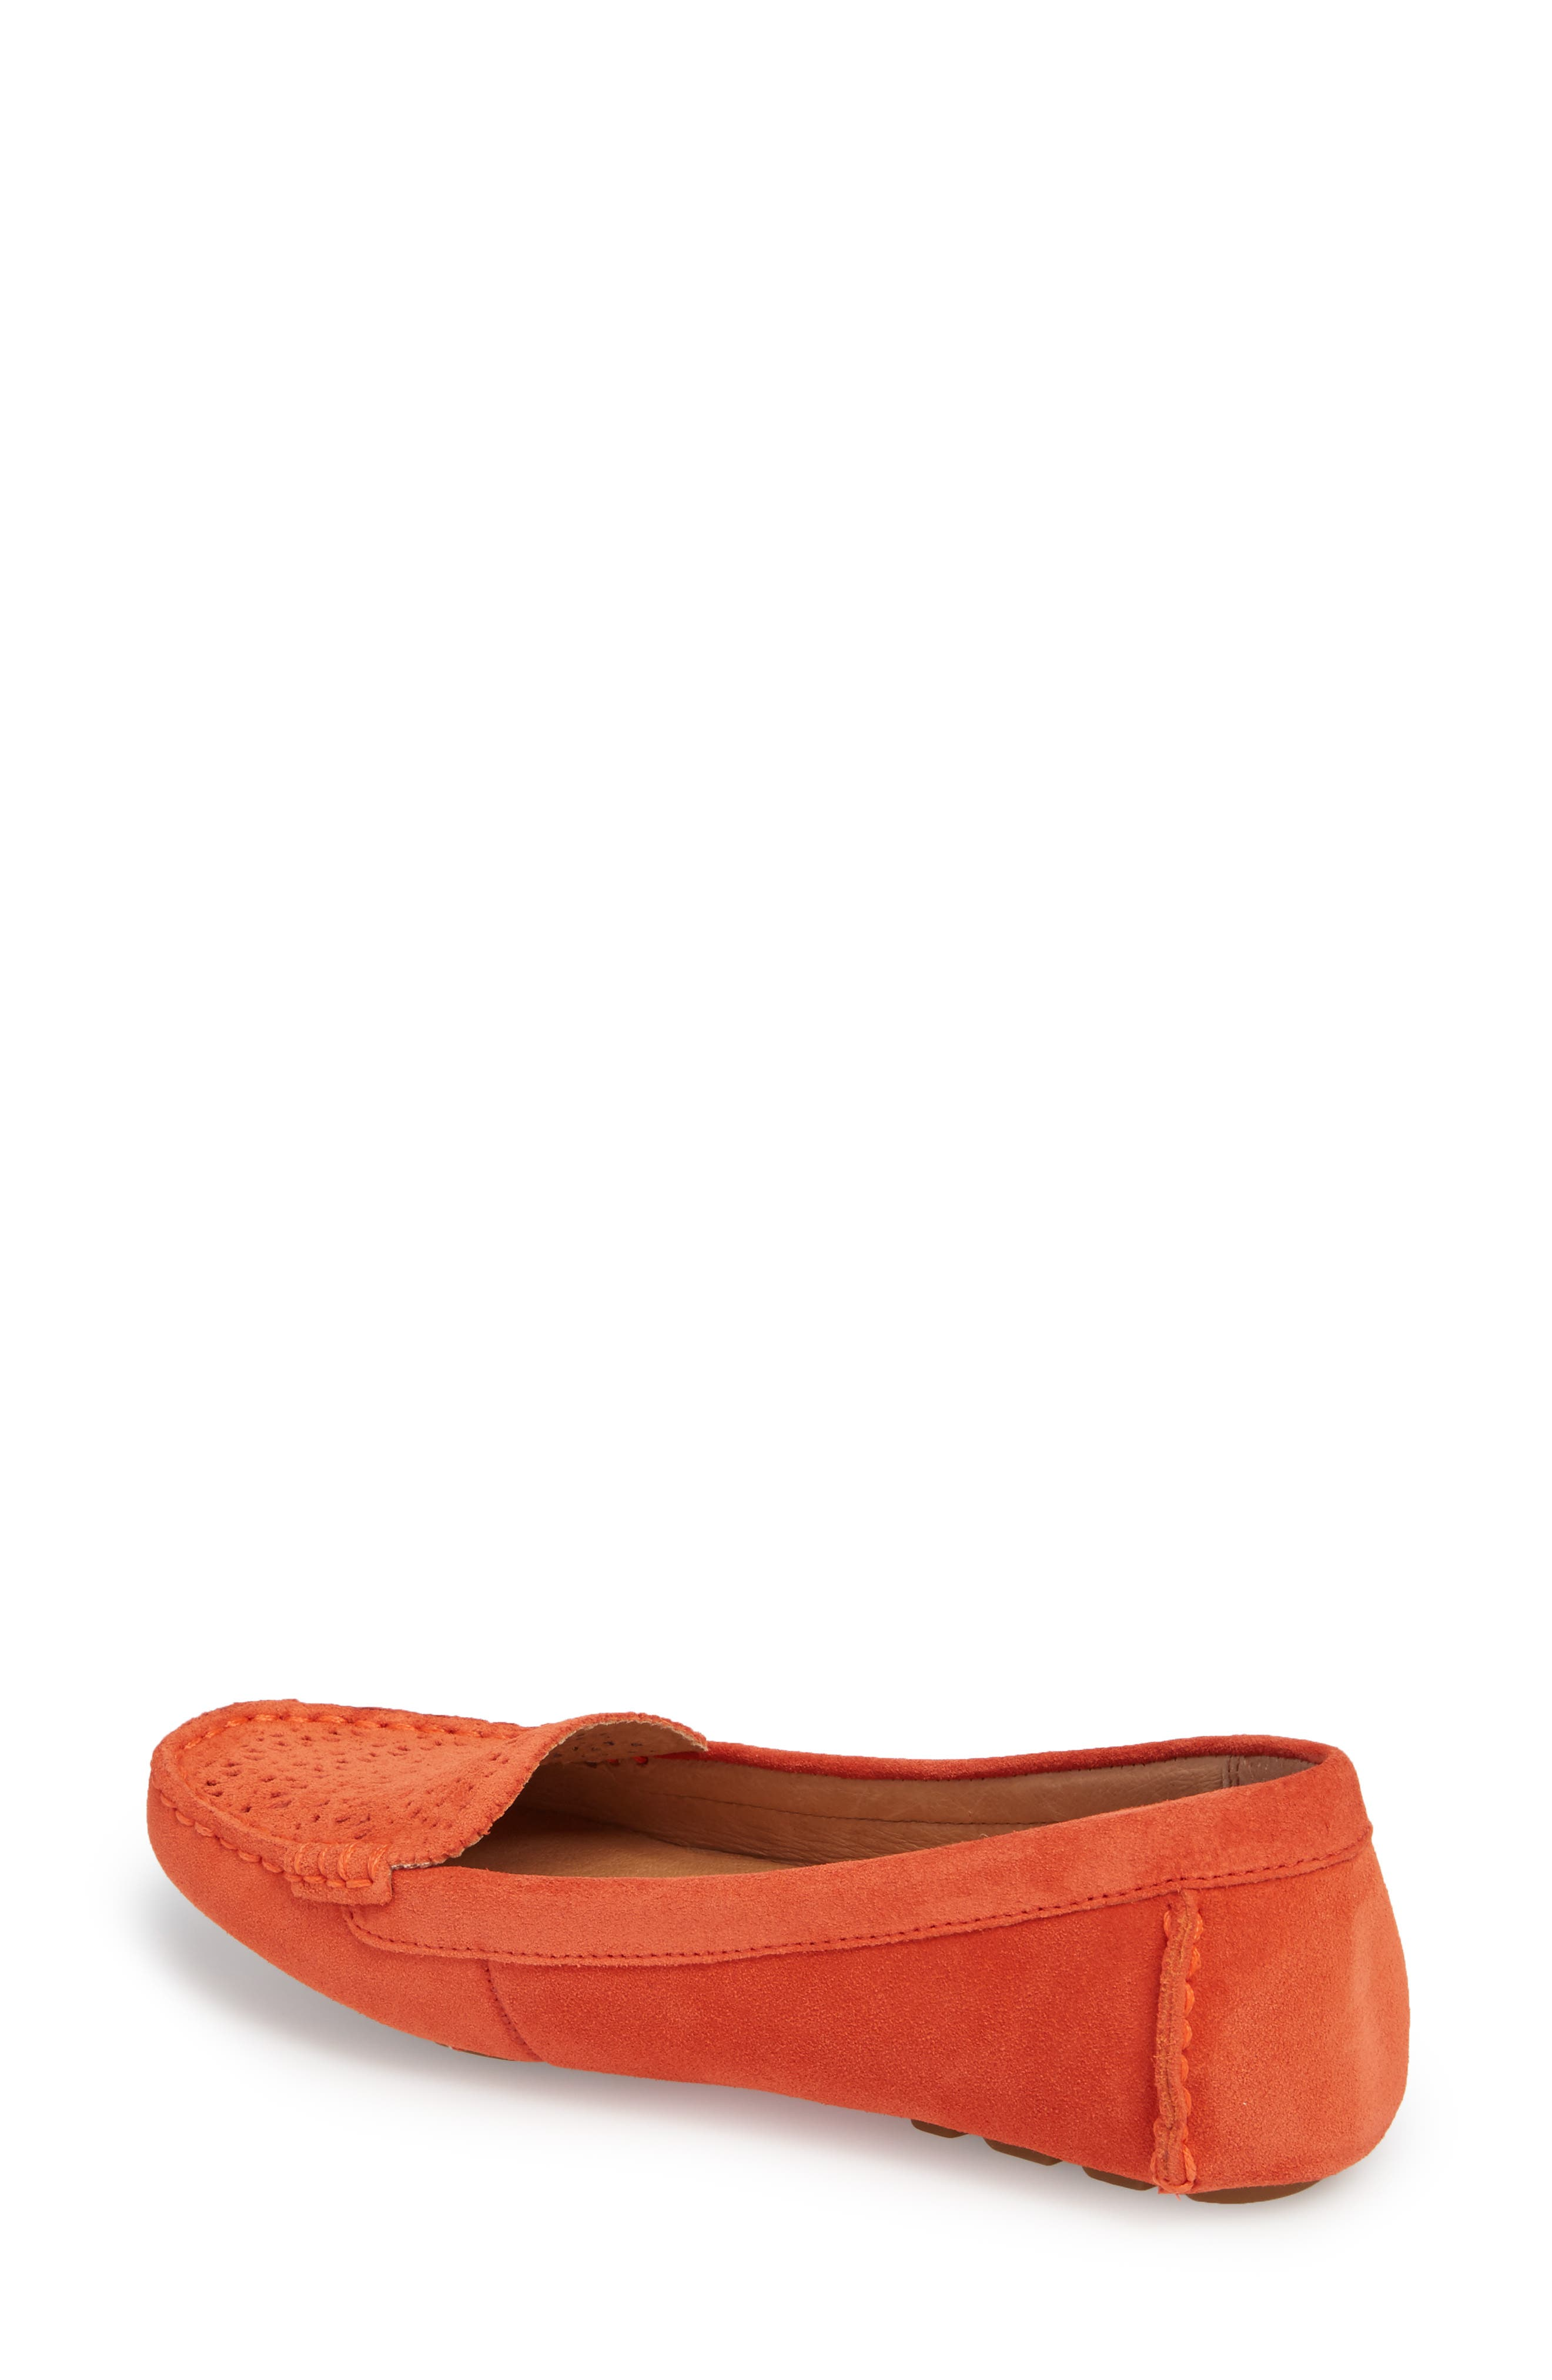 Clair Flat,                             Alternate thumbnail 2, color,                             Red Orange Suede